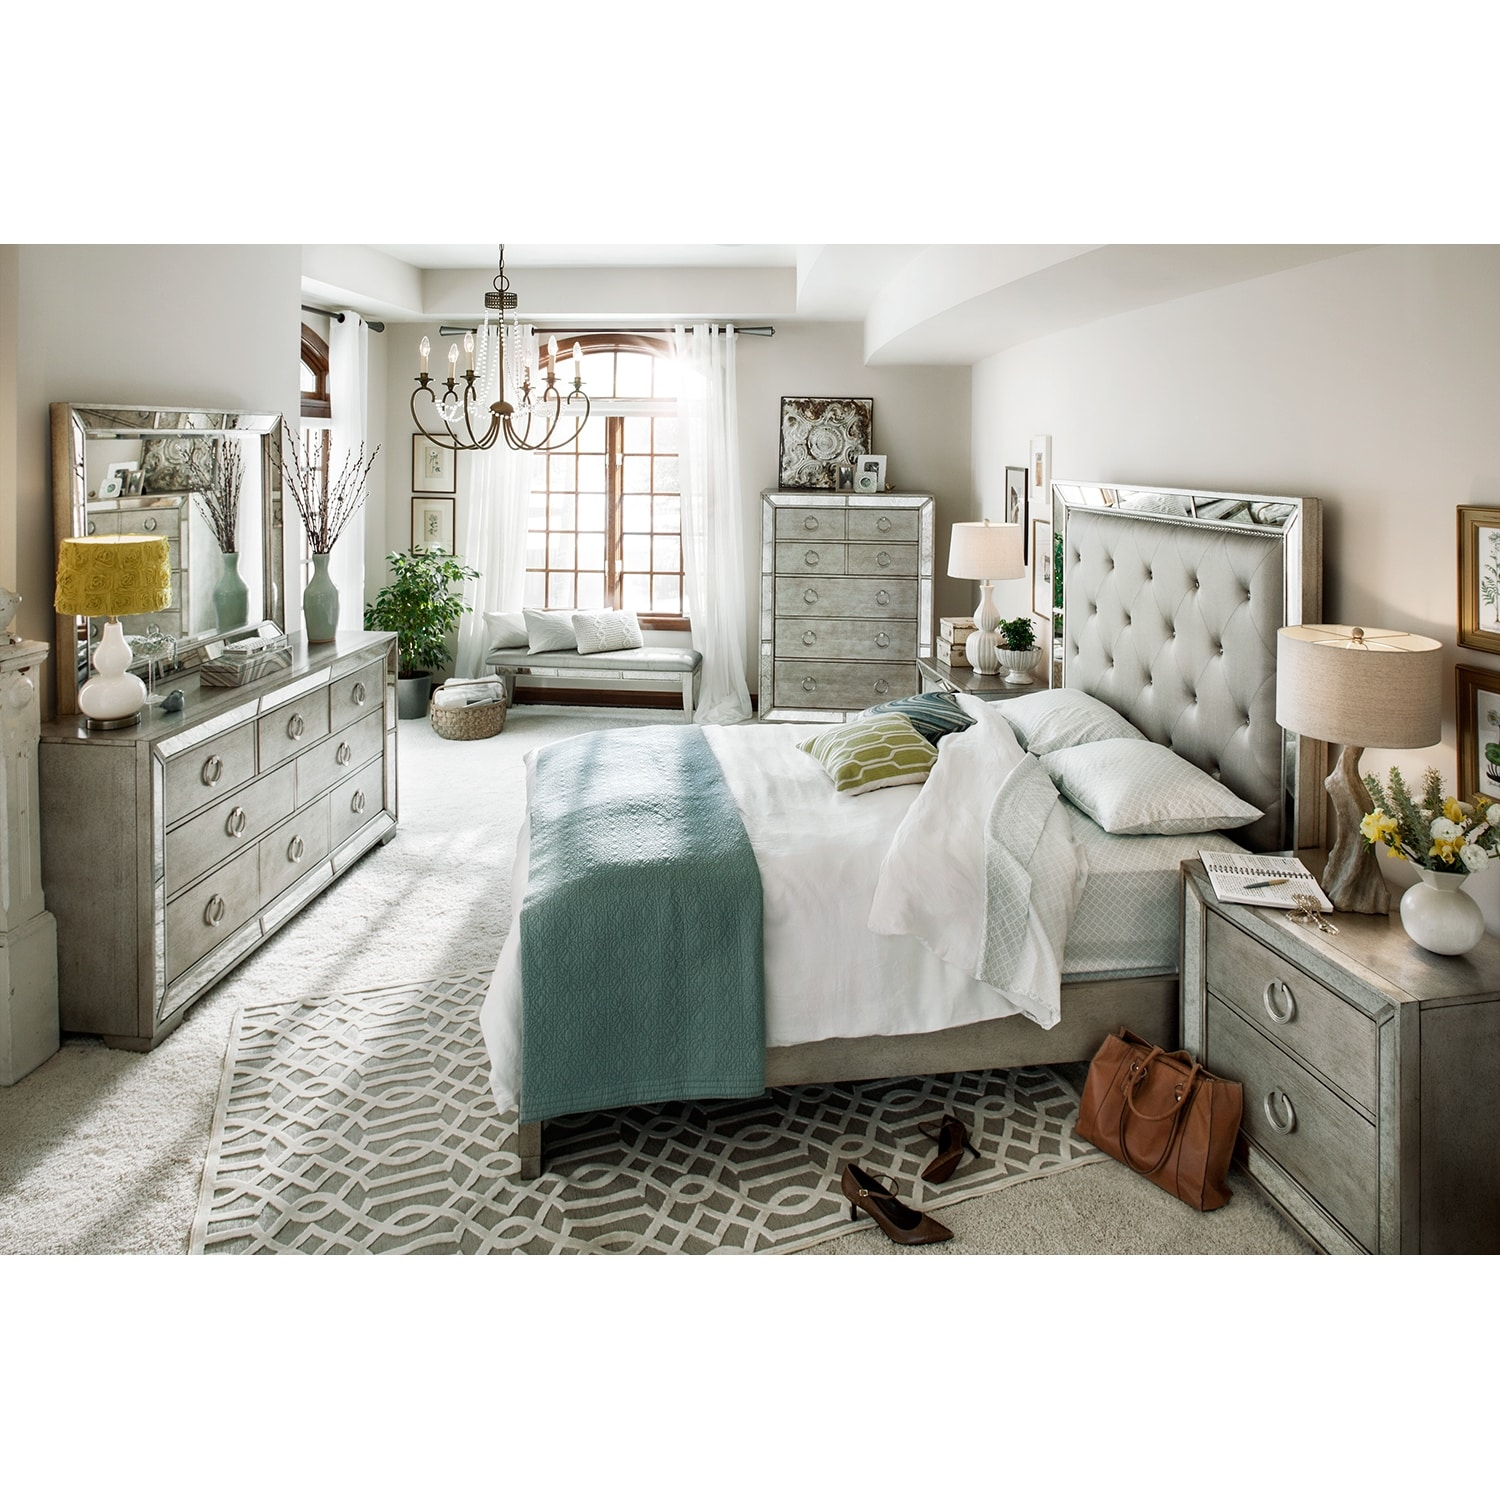 Bedroom Furniture: Angelina 5-Piece King Bedroom Set - Metallic